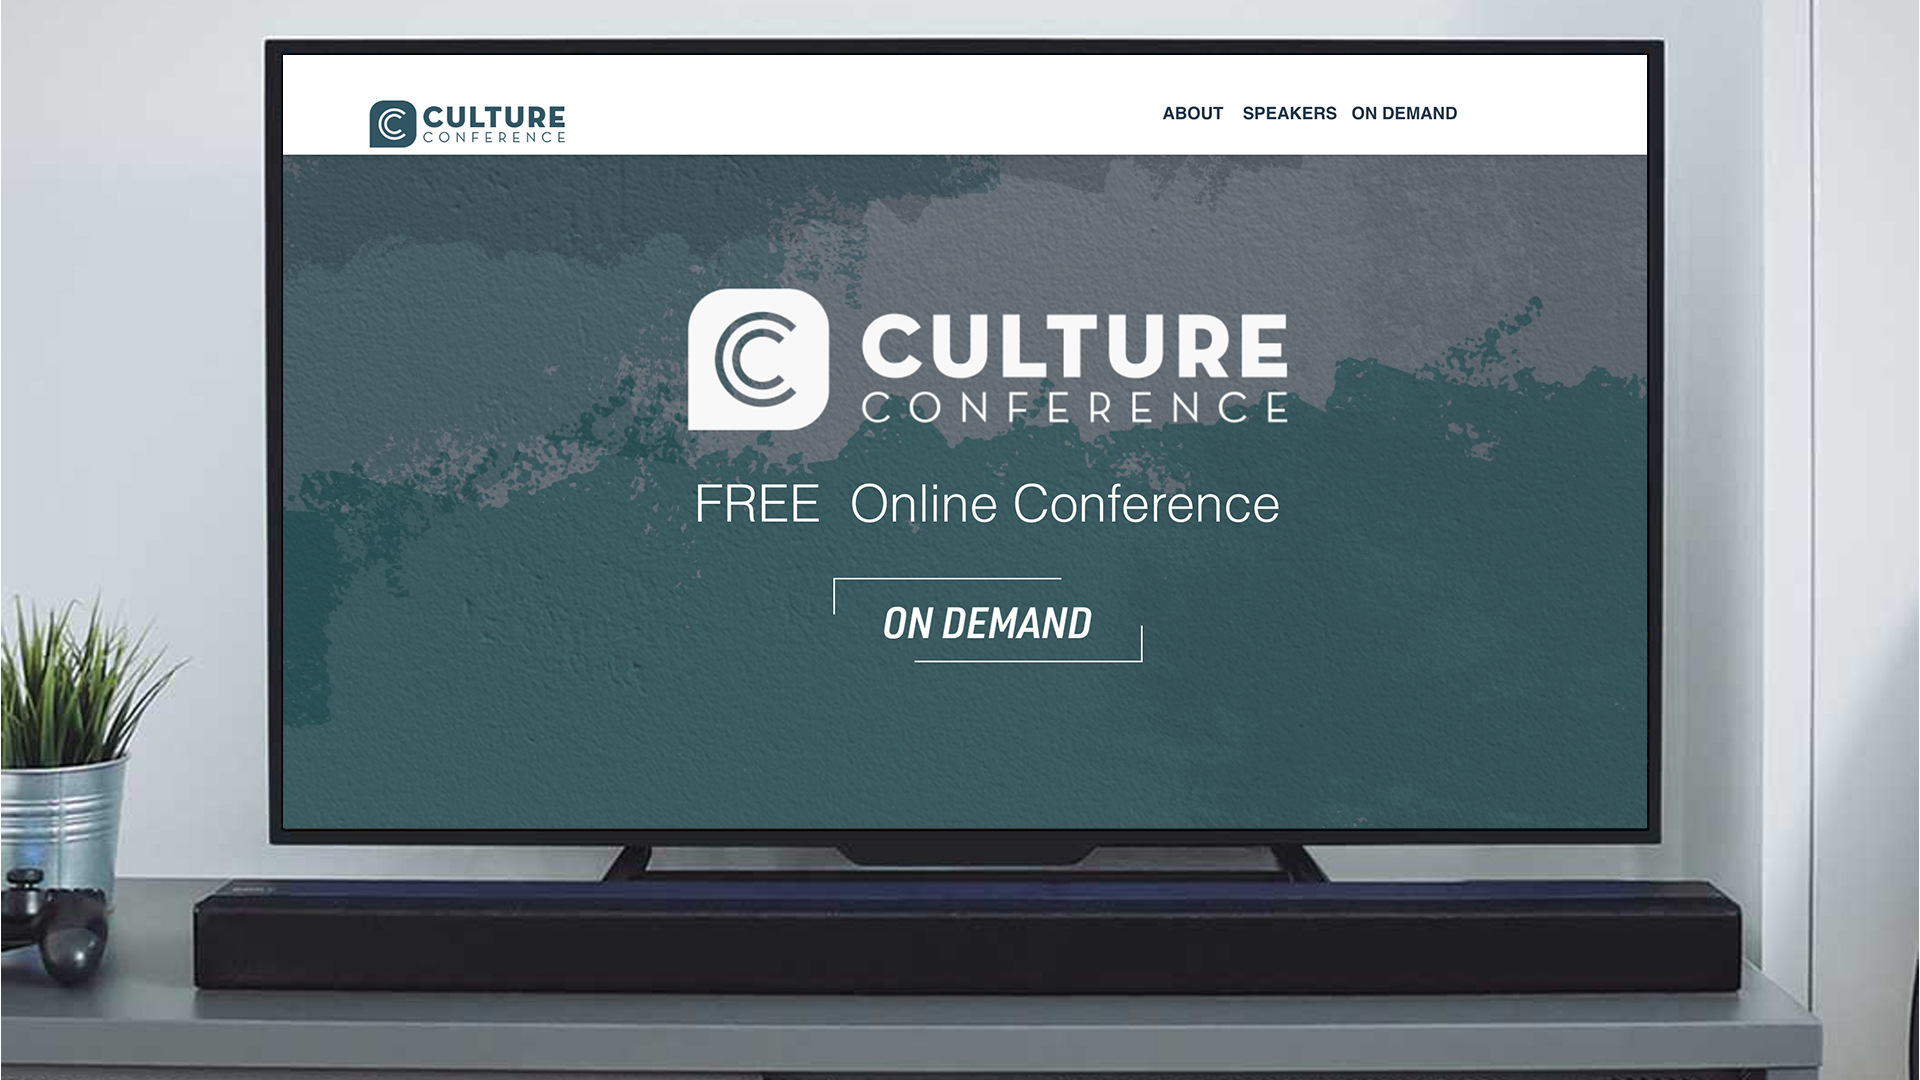 Culture-Conference-Clever-Marketing-1